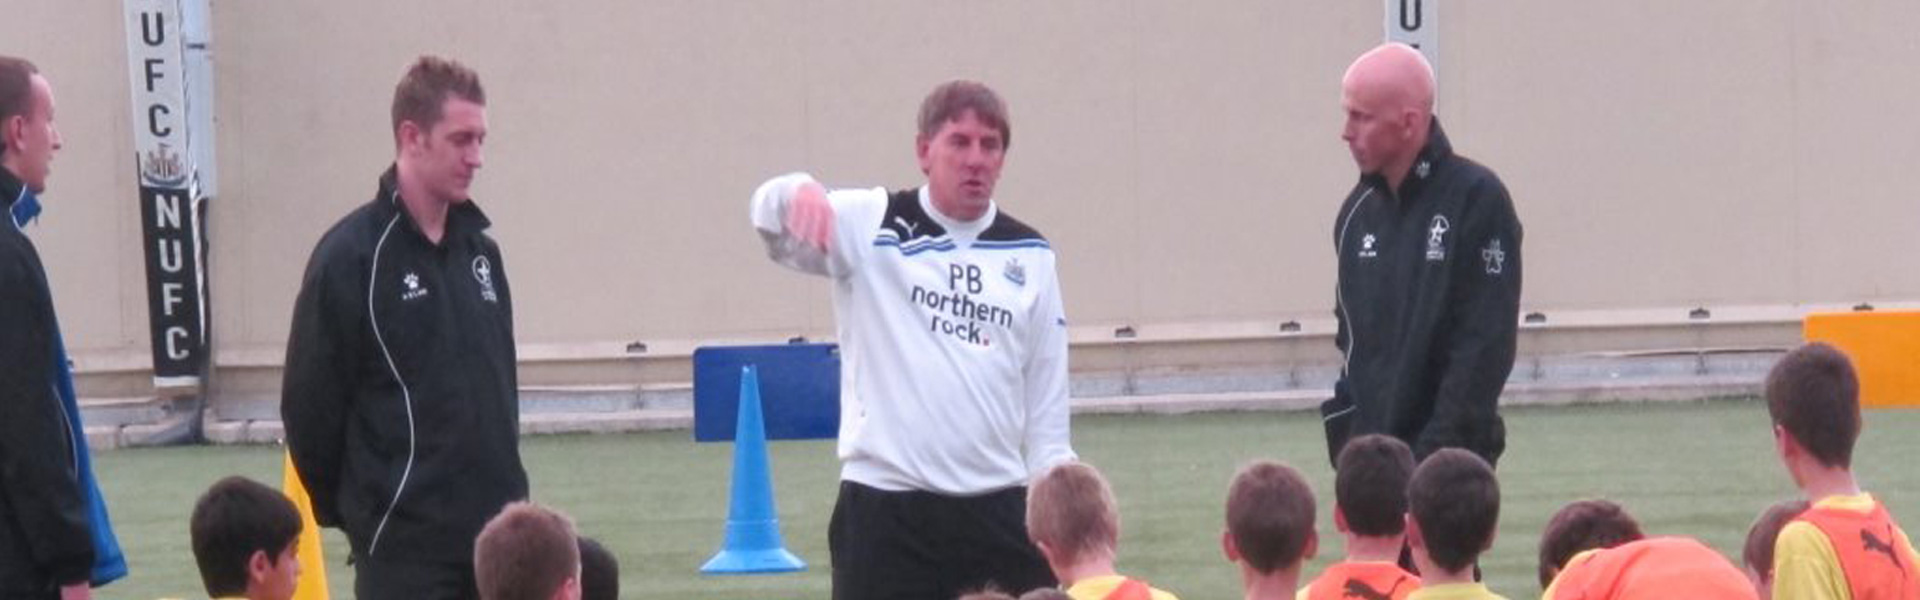 PFT training at Newcastle United with Peter Beardsley